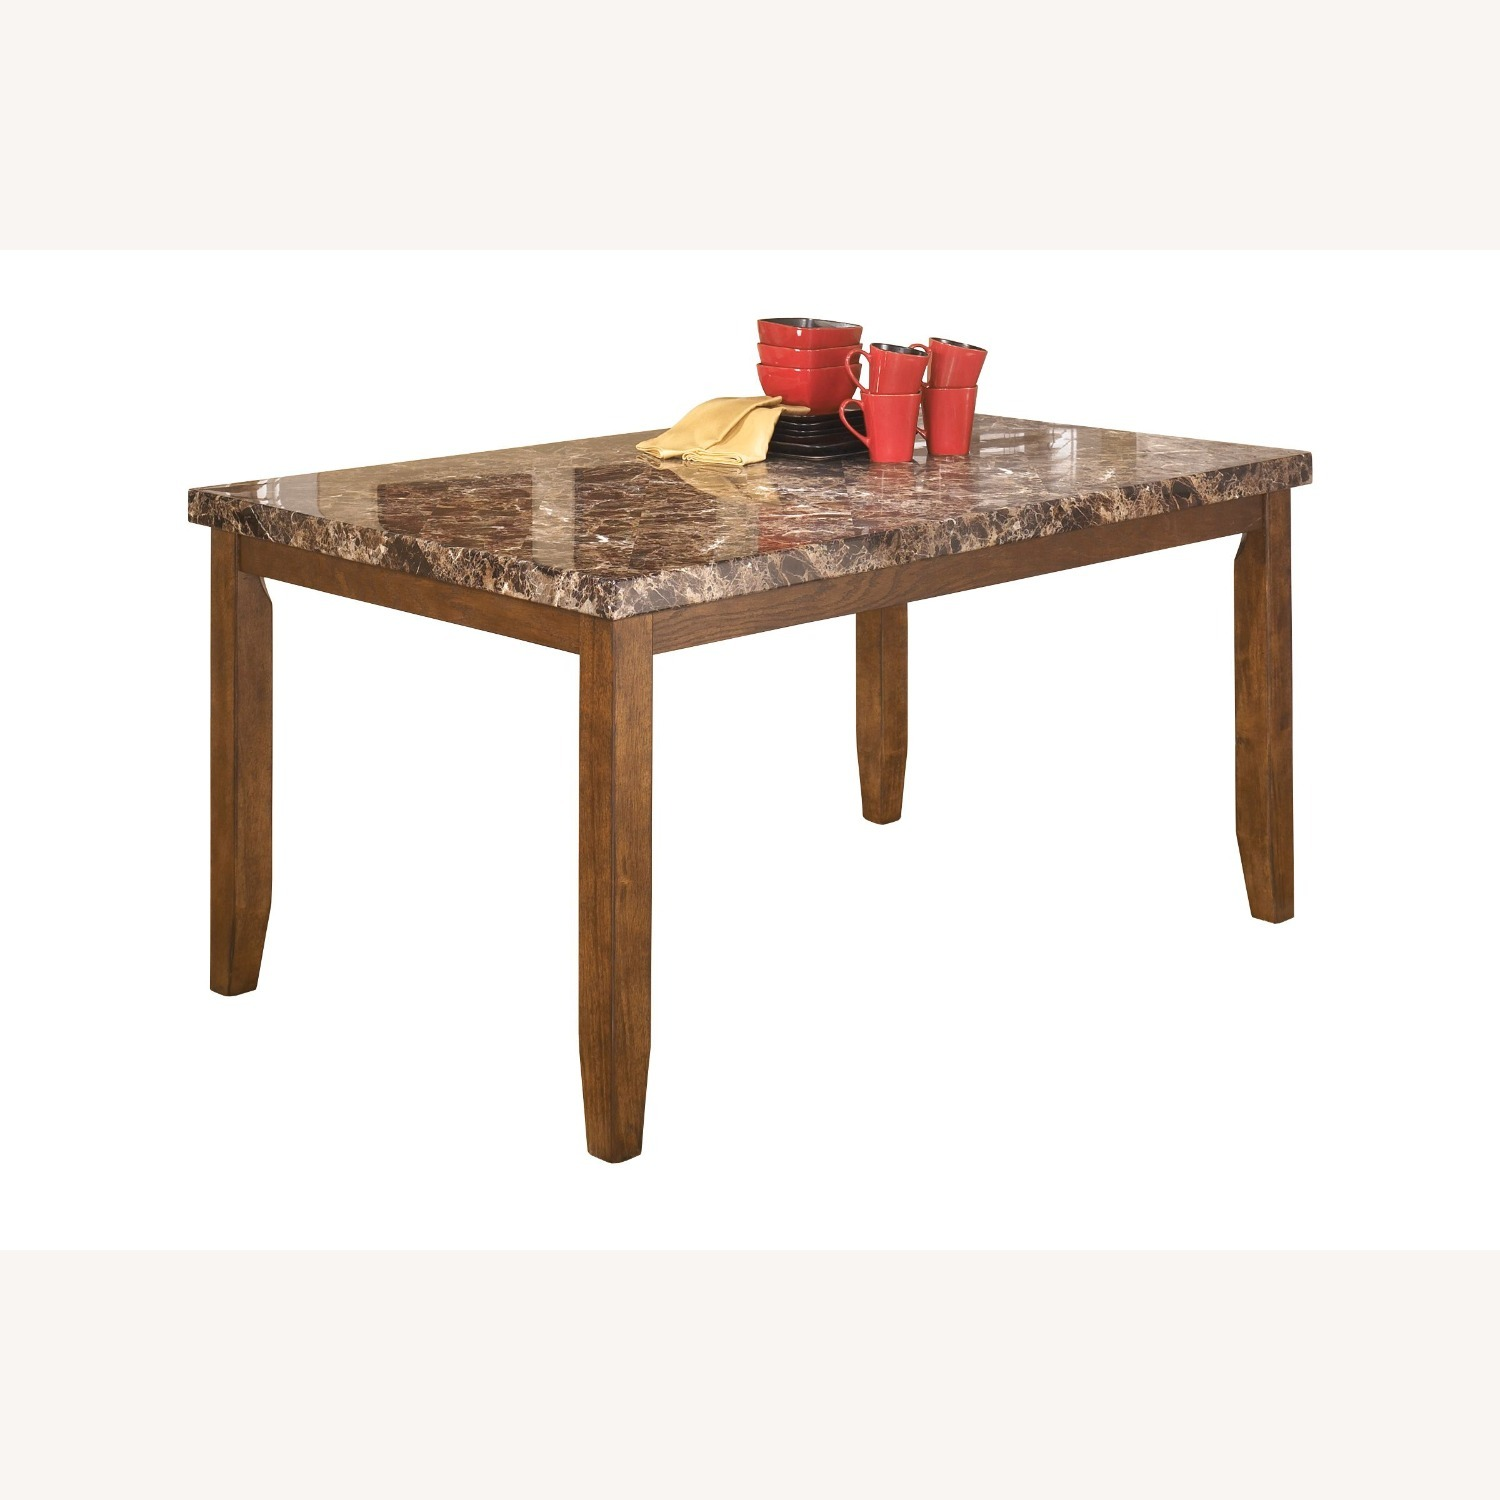 Bob's Discount Rectangular Dining Table with 6 Chair - image-1